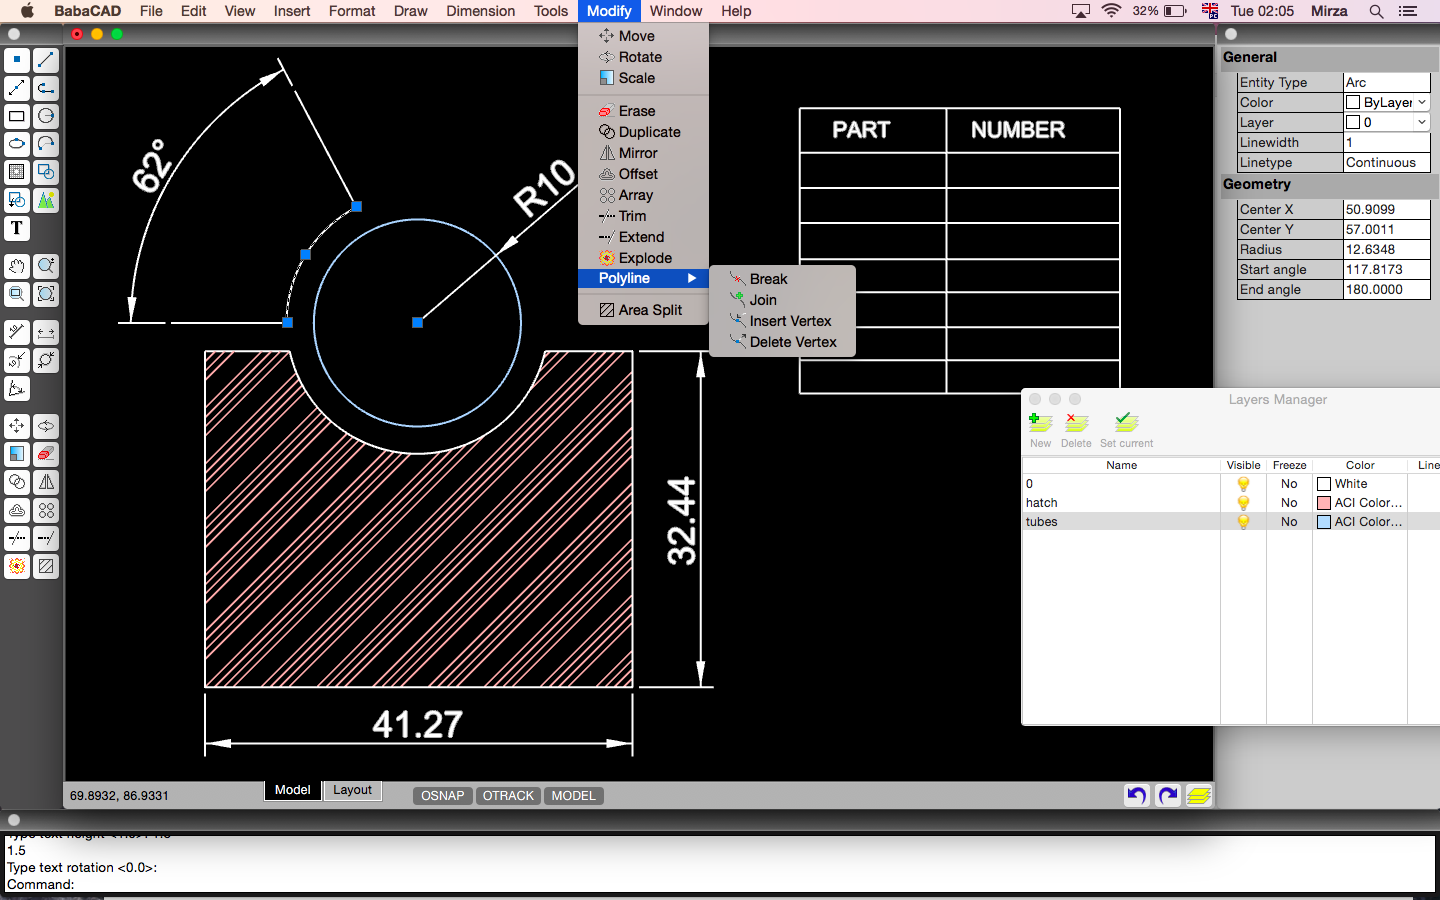 Babacad free cad software for mac os Free cad programs